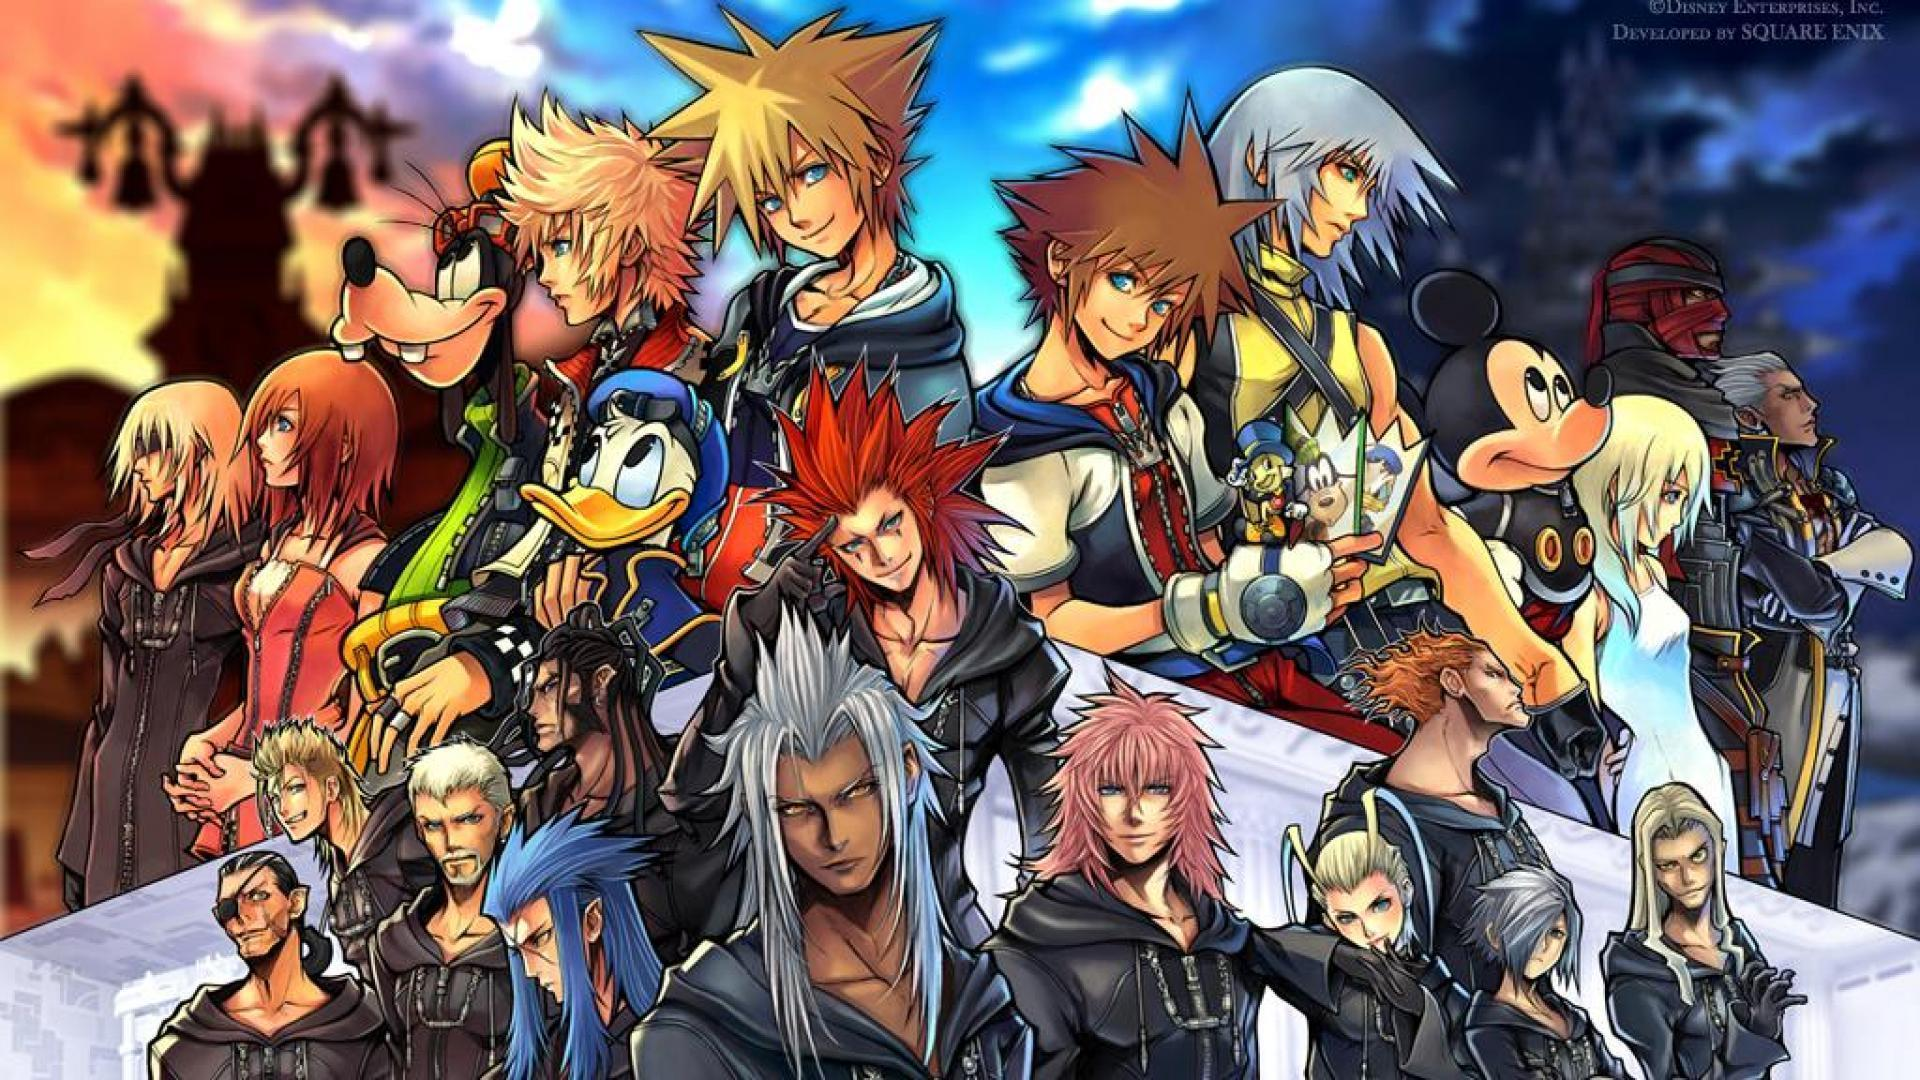 Wallpapers For > Kingdom Hearts Axel Wallpapers 1920x1080